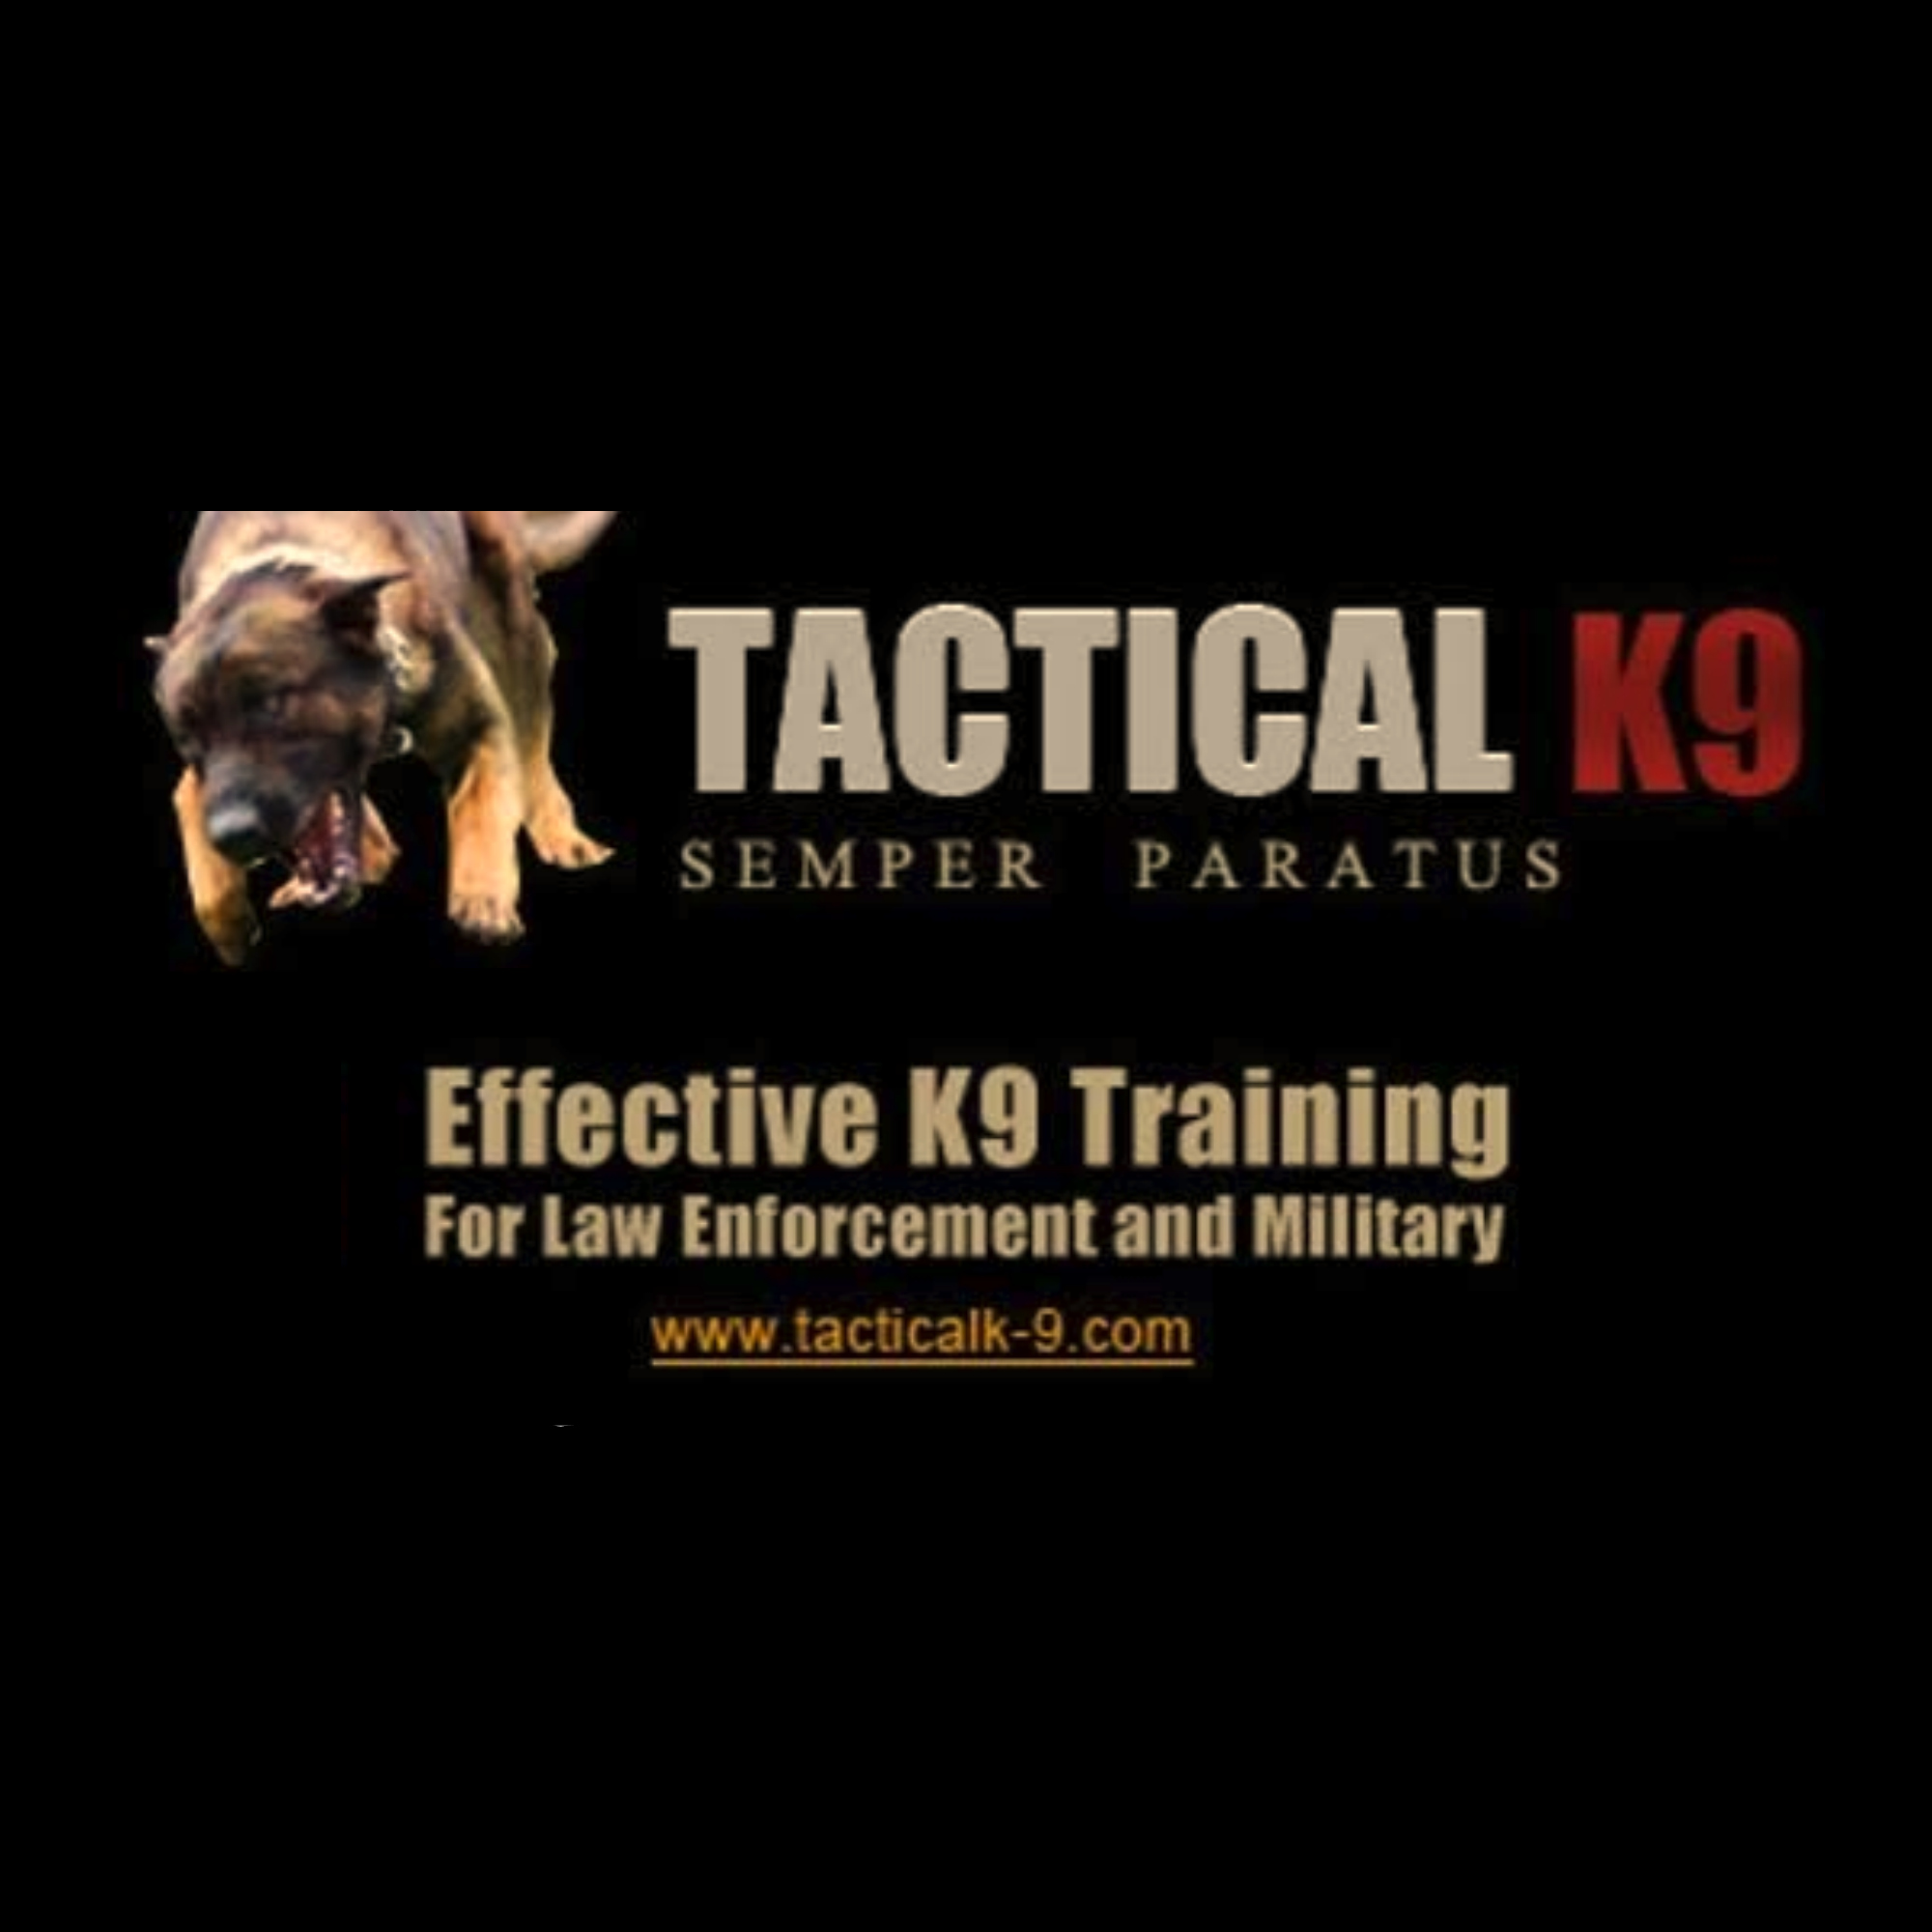 Tactical K9 LLC